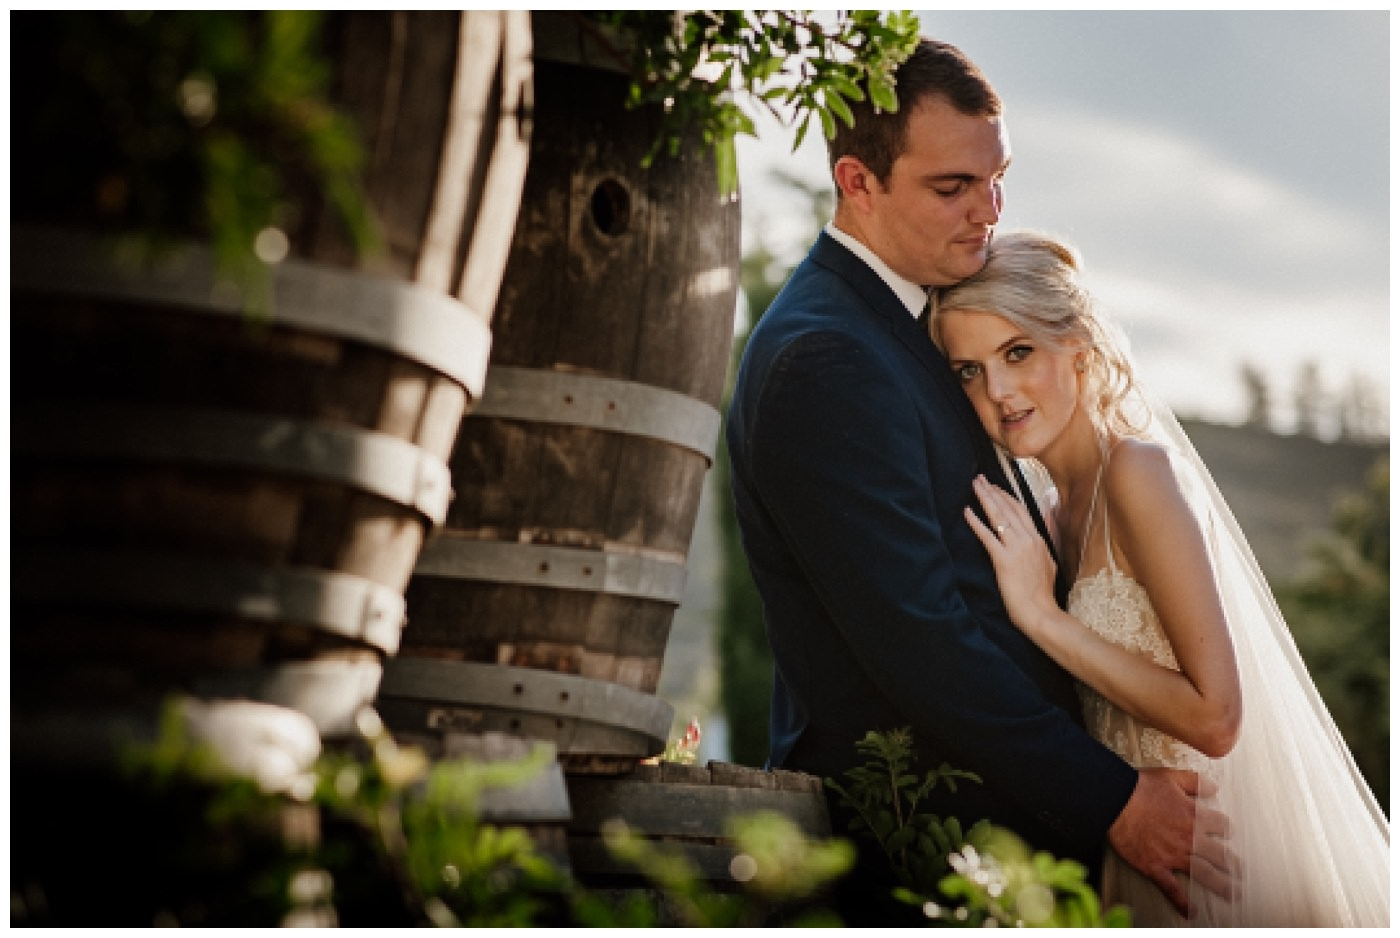 Towerbosch wedding photography